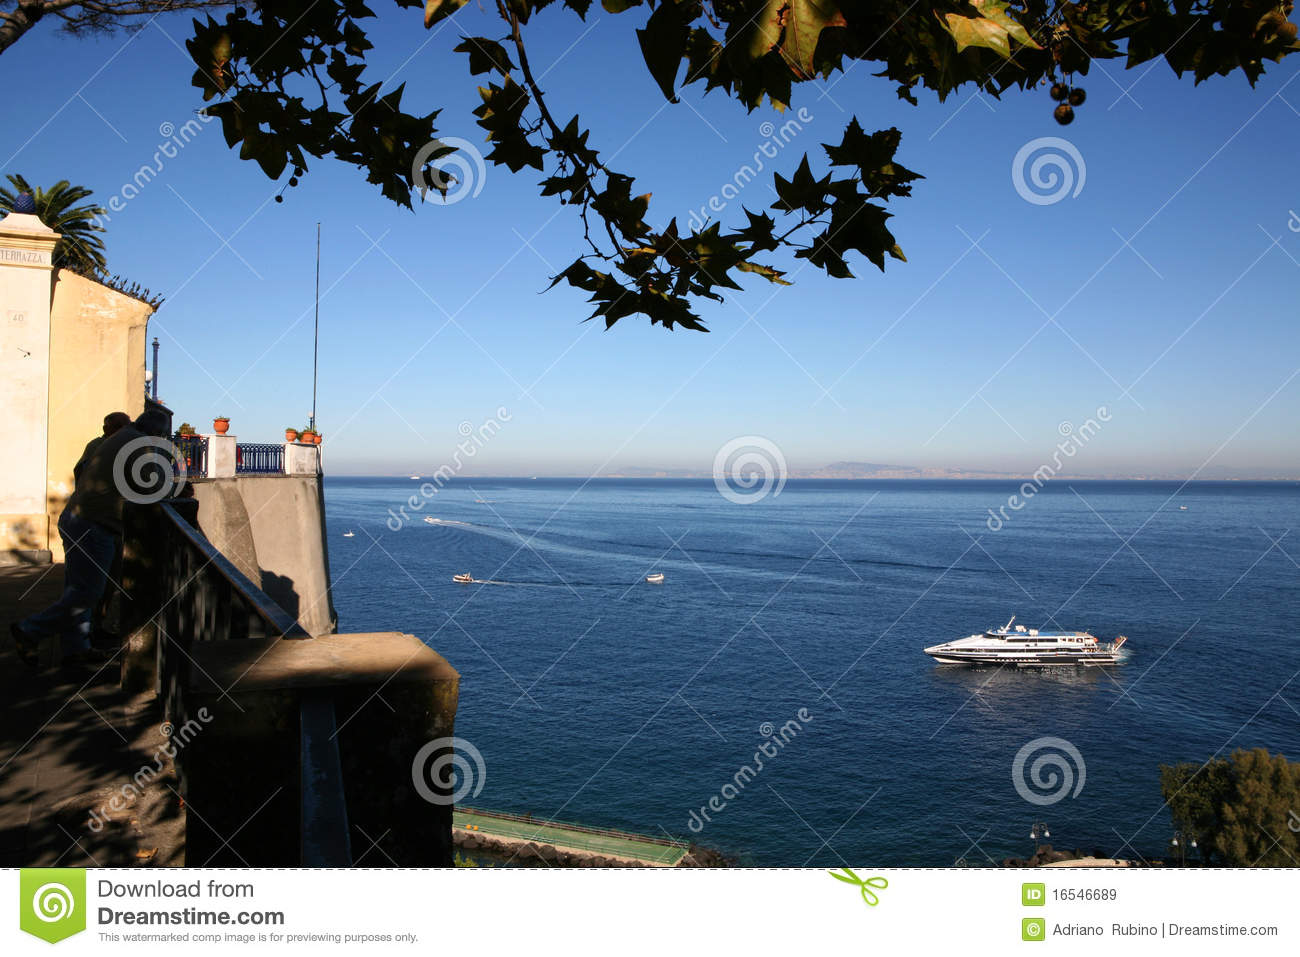 Download Seascape of Italy stock image. Image of boat, seaside - 16546689